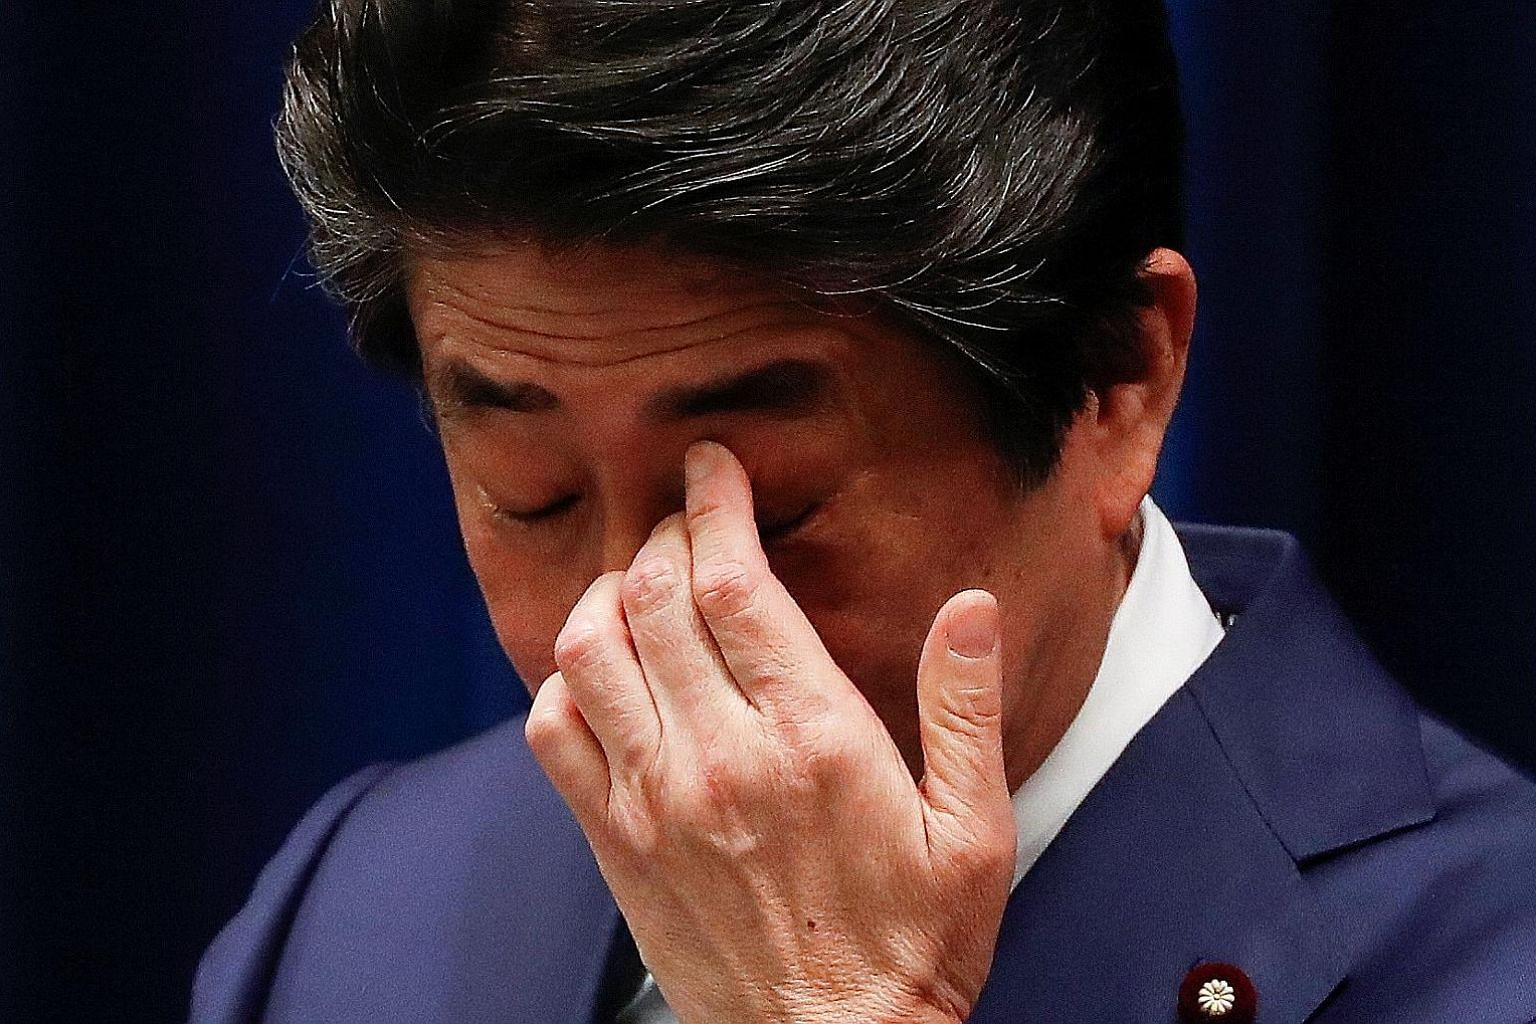 Japanese Prime Minister Shinzo Abe is dealing once again with a scandal from three years ago, after the publication last week of a 2018 suicide note by a Finance Ministry official, and the filing of a lawsuit by the official's widow.